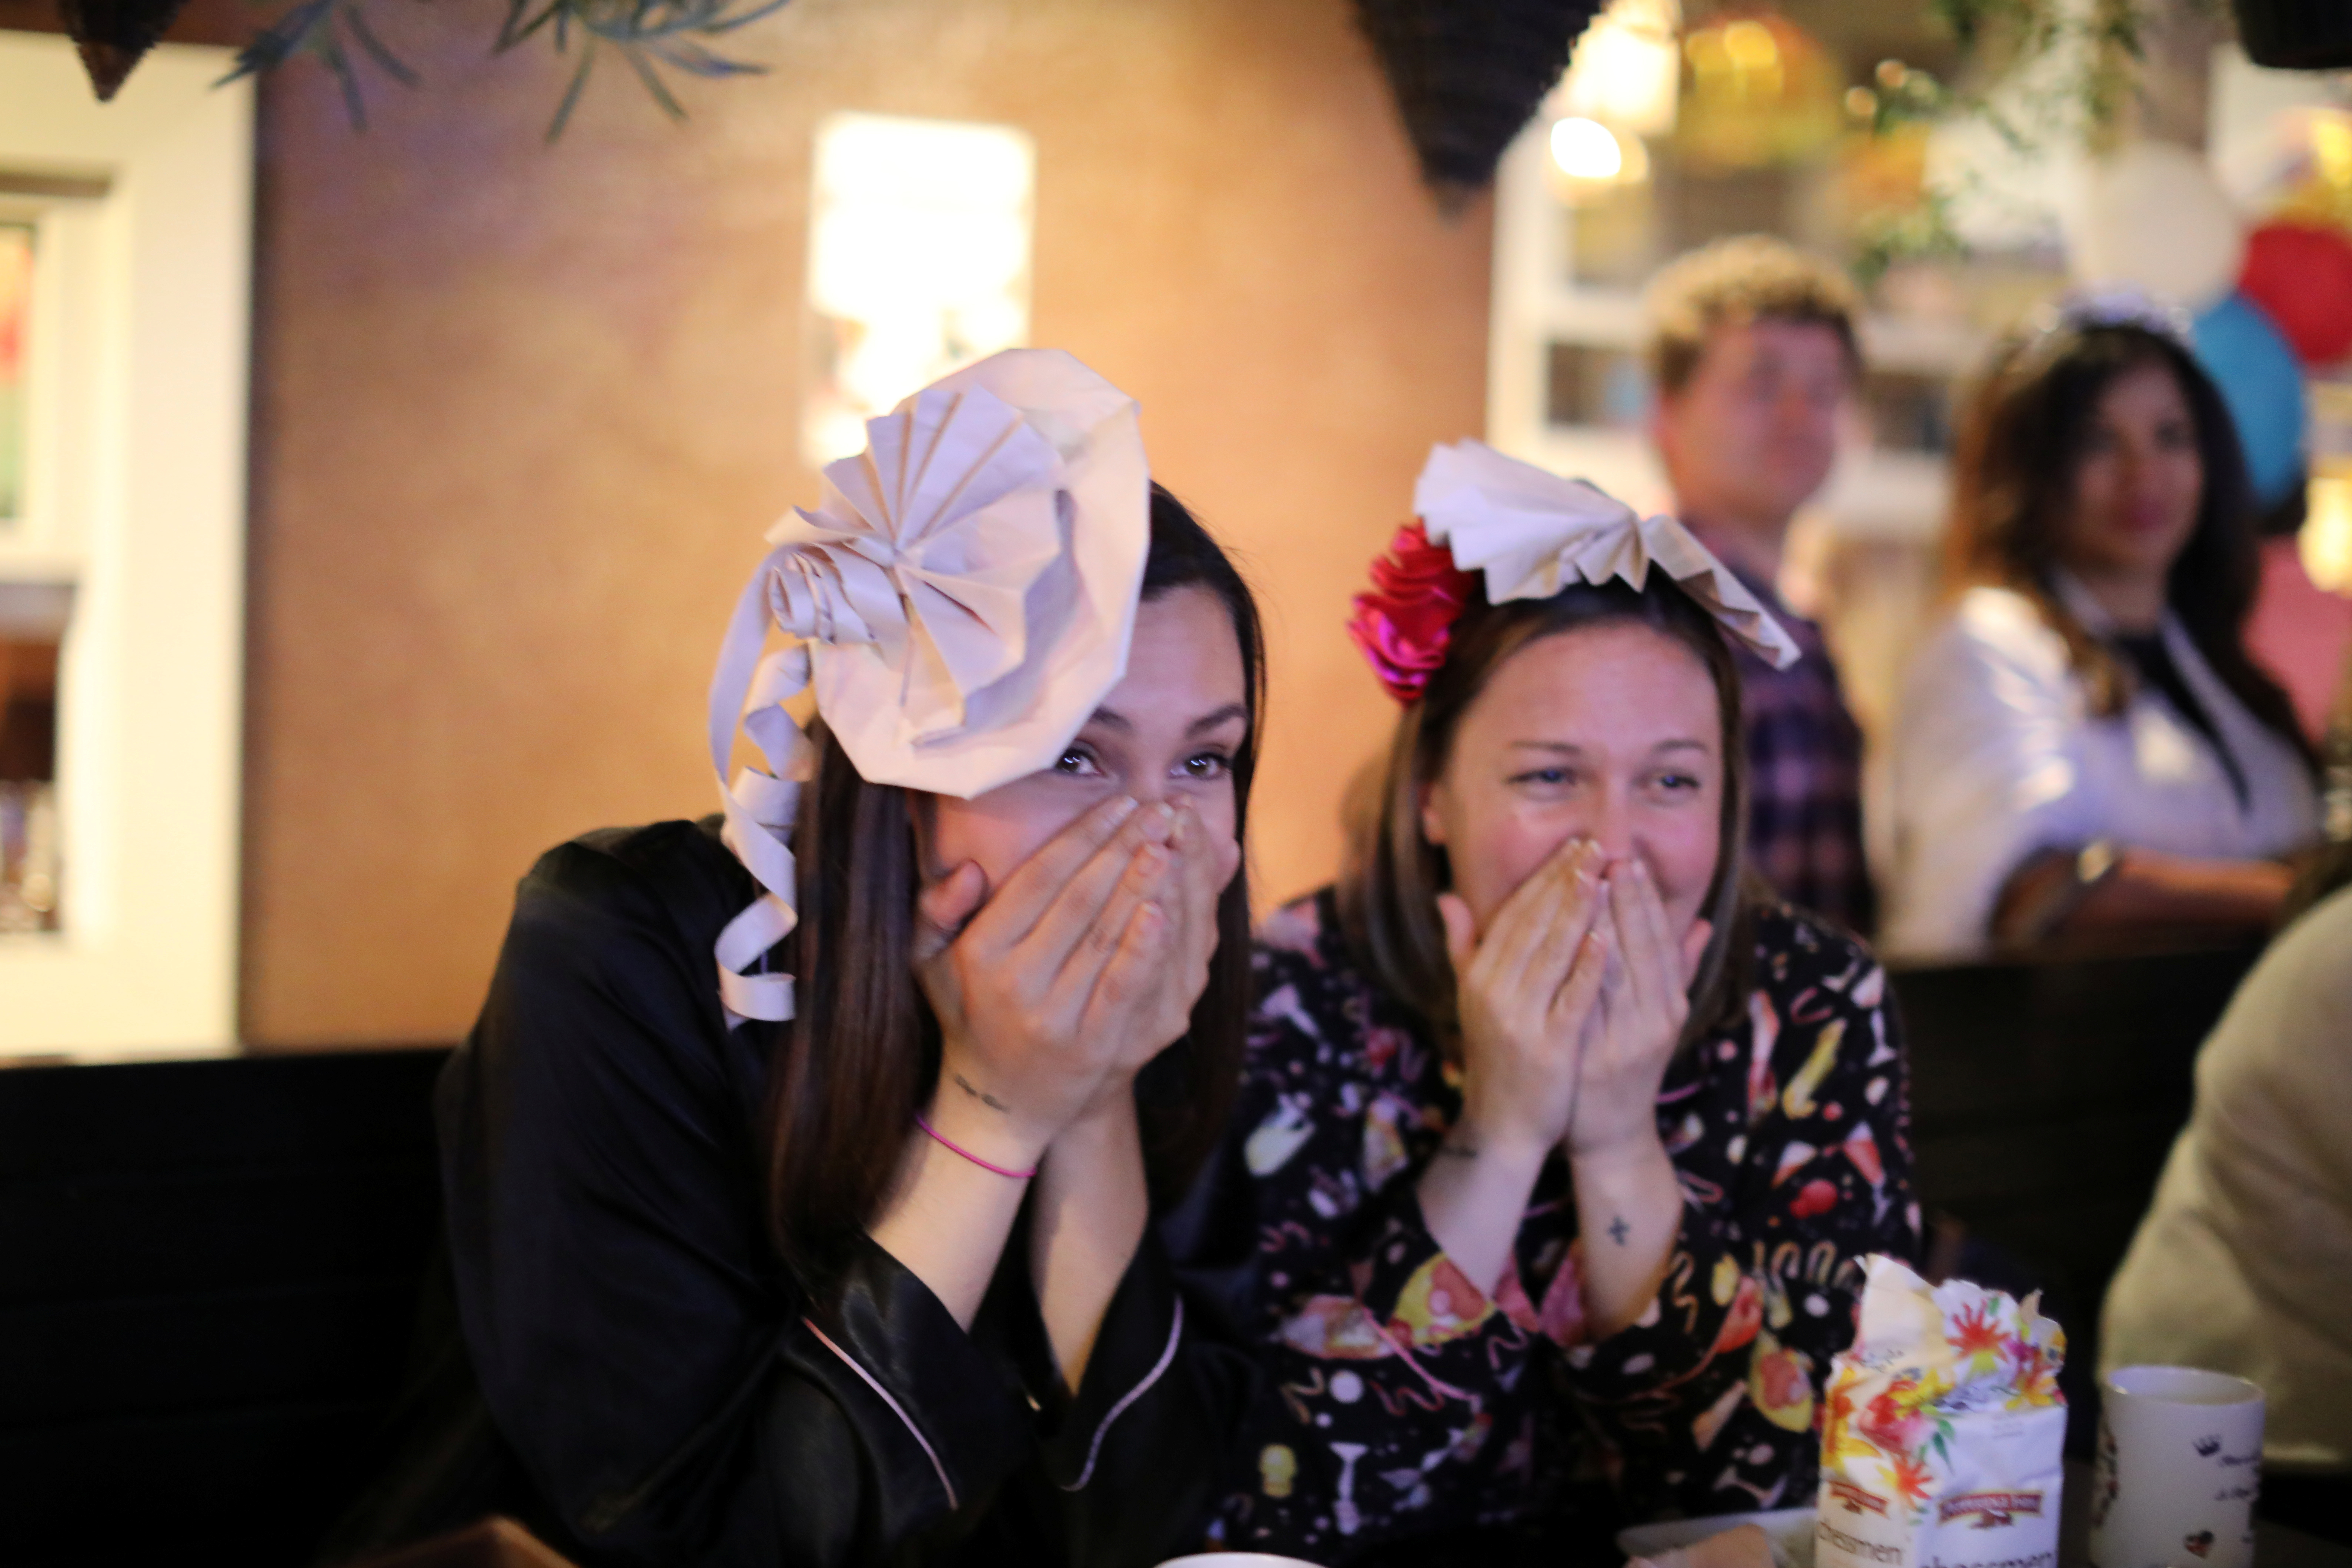 Women react during a royal wedding watching party for the wedding of Britain's Prince Harry and Meghan Markle at the Cat & Fiddle pub in Hollywood, Los Angeles, California, May 19, 2018.